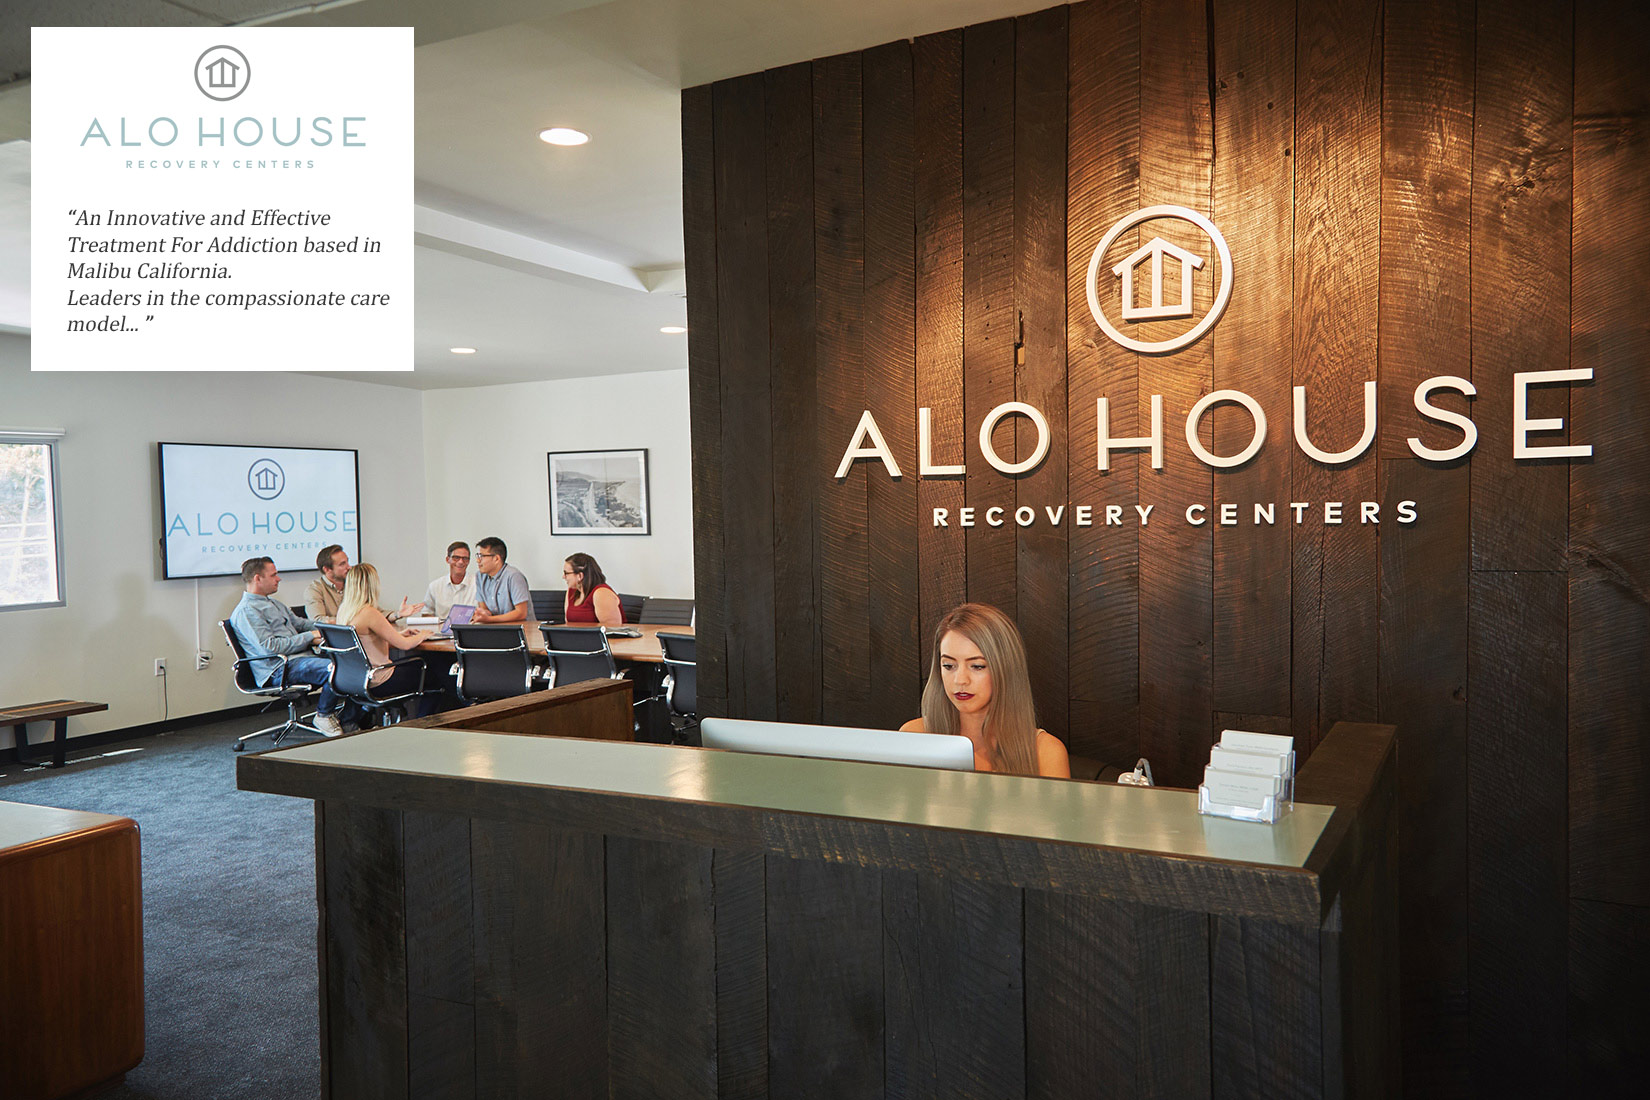 Alo House Recovery Center Malibu. Lifestyle Photo Shoot. Reception